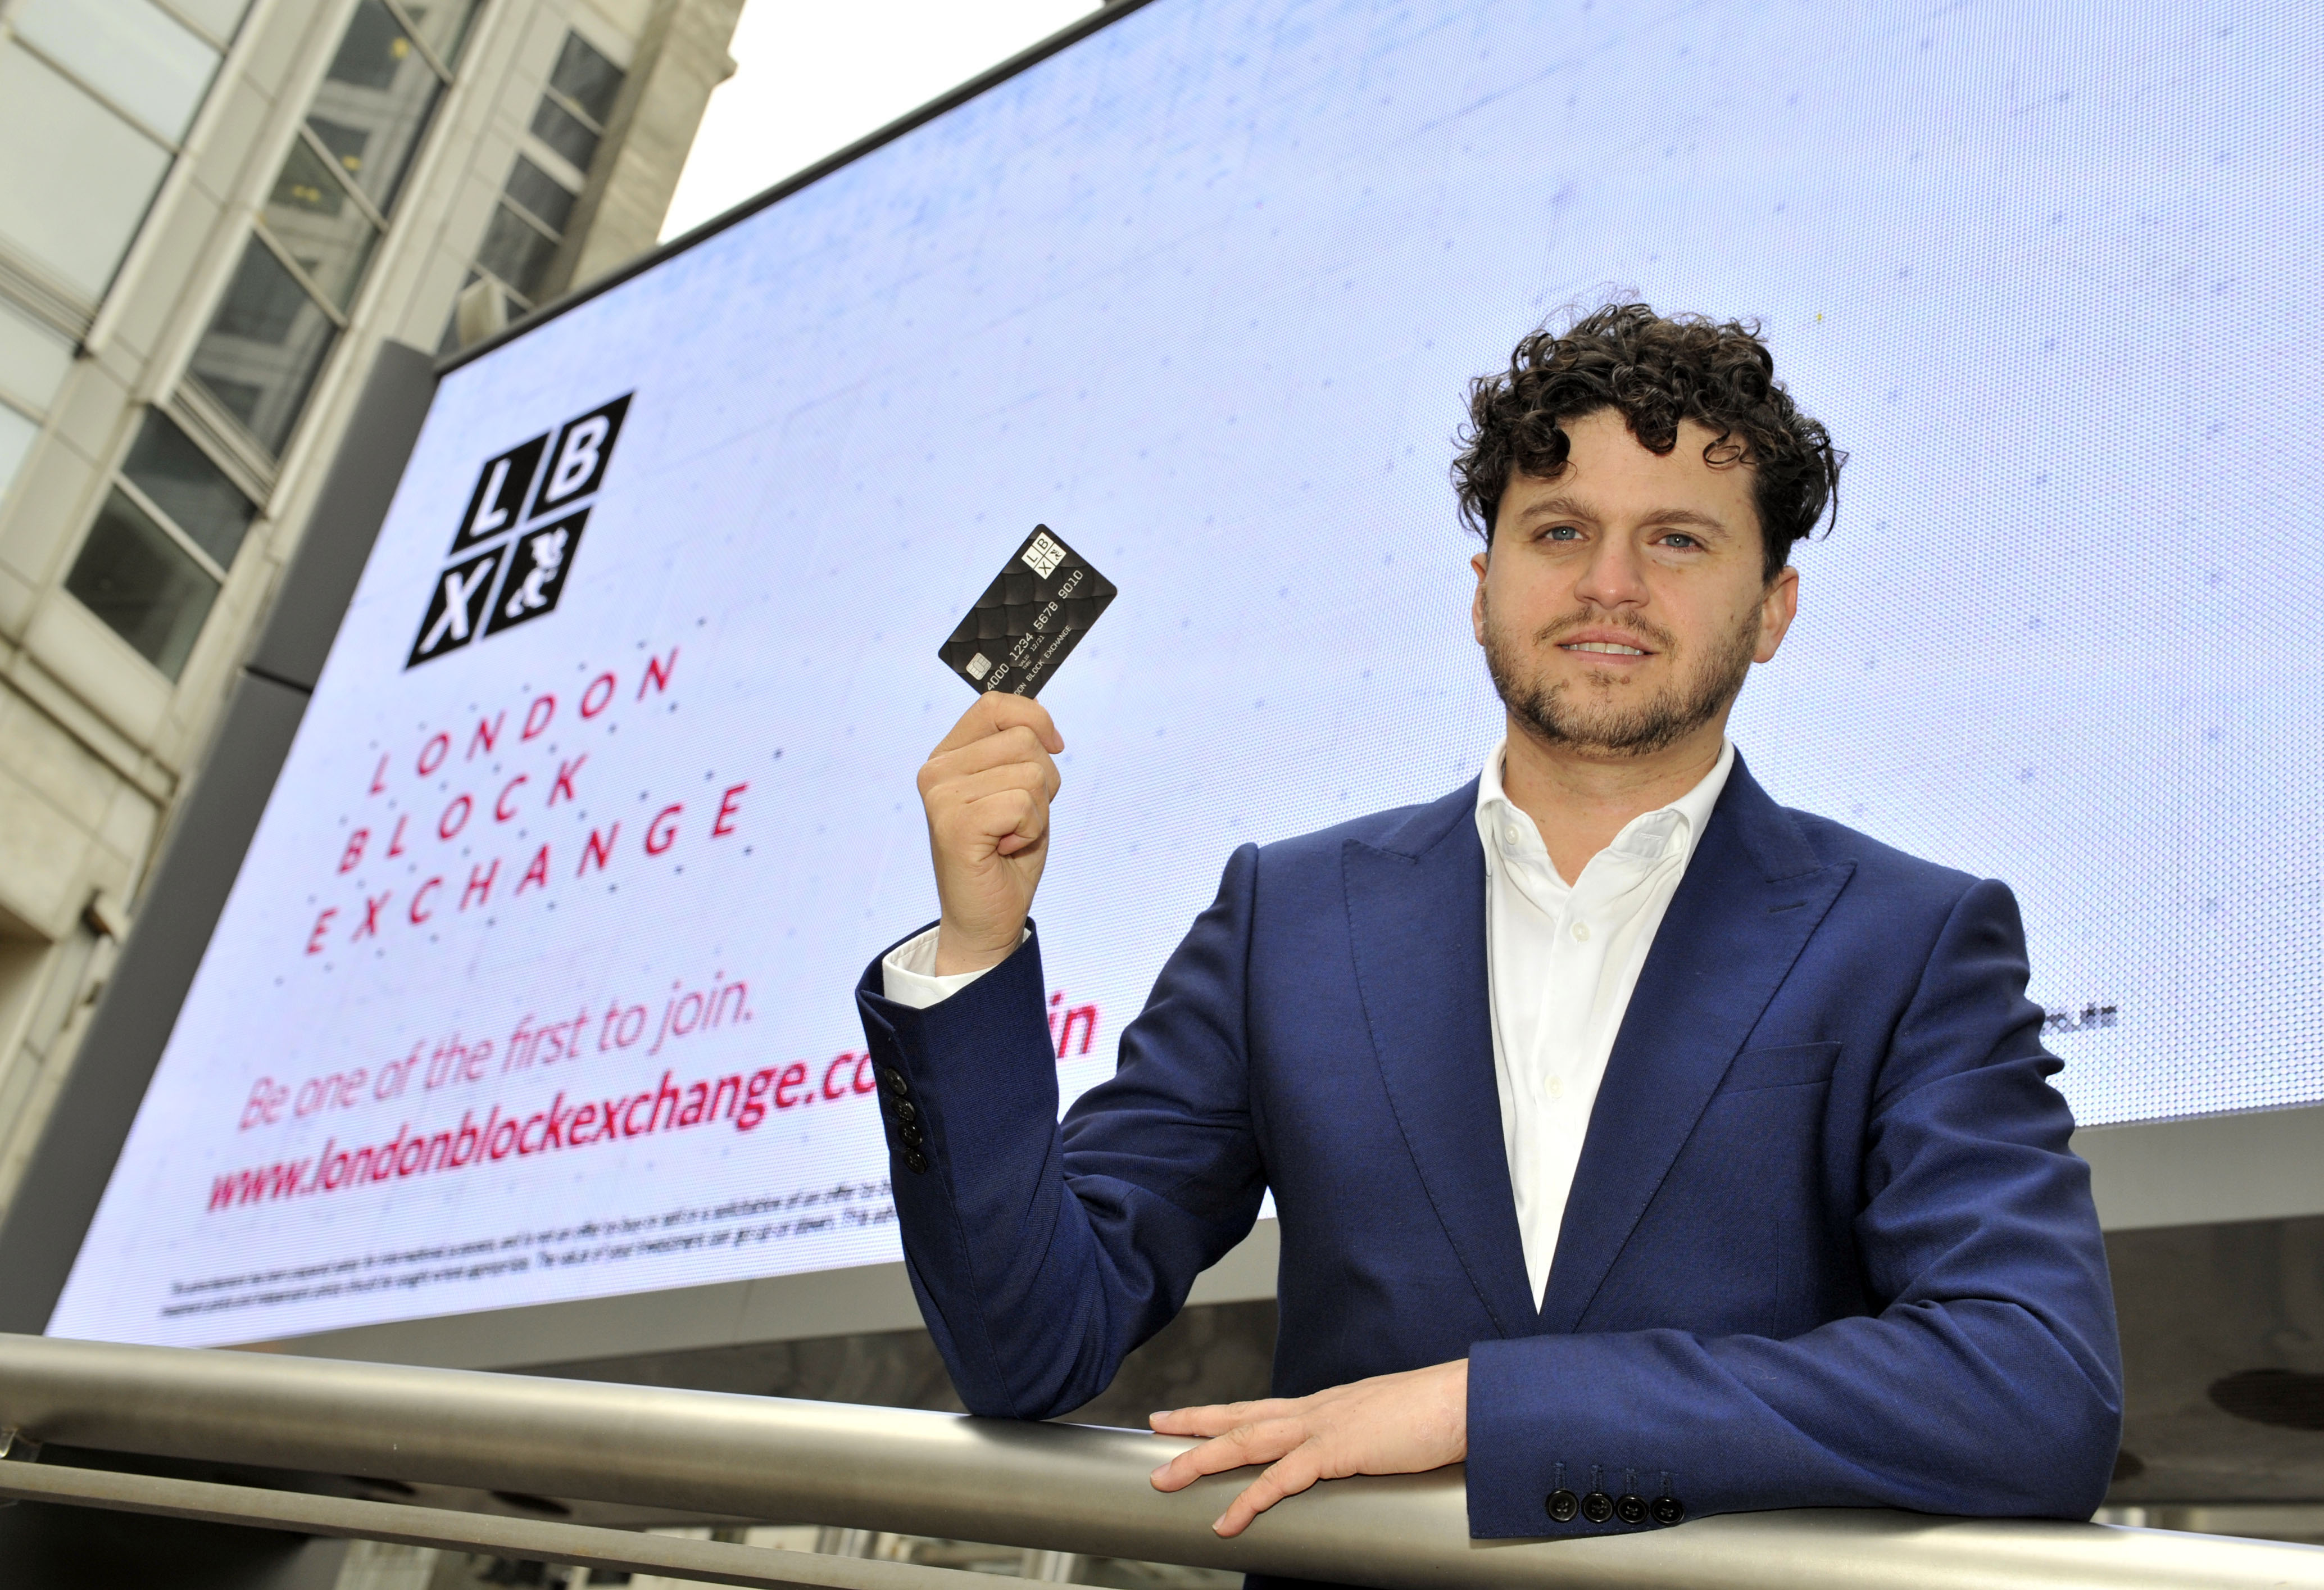 "Cryptocurrency comes of age as Founder and CEO Benjamin Dives launches the London Block Exchange and its new Dragoncard which allows you to instantly buy goods using cryptocurrency. CRYPTOCASH COMES OF AGE: NEW CRYPTO CARD & EXCHANGE TO LAUNCH FOR LONDON MARKET UK consumers will soon be able to spend cryptocurrencies such as Bitcoin in their local supermarket with a unique new cryptocurrency card. The card is powered by a new cryptocurrency exchange – The London Block Exchange (LBX) – based in London and dedicated to the UK market. It is the first to offer Sterling to Crypto exchange across a broad range of digital currencies. The platform will enable private and institutional investors to buy and sell cryptocurrencies using an intuitive and simple smartphone app and trading interface. Users will also be able to use a linked Visa card to spend crypto anywhere that card payments are accepted. The LBX Dragoncard will be able to immediately perform a trade on the exchange and convert cryptocurrency into traditional funds in order to instantly purchase goods. ""If a shop accepts Visa, it now accepts Bitcoin, Ethereum, Litecoin or Ripple,"" said LBX Founder and CEO Benjamin Dives. He said that the opening of a London exchange was a response to growing demand from consumers and institutions crying out for a professional and secure exchange. ""Despite being the financial capital of the world, London is a difficult place for investors to enter and trade in the cryptocurrency market. We'll bring it into the mainstream by removing the barriers to access, and by helping people understand and have confidence in what we believe is the future of money."" The exchange web site - www.londonblockexchange.com - went live today for public pre-registrations, while institutional investors will be added by private invitation. The trading platform will operate with a select number of institutions until 4th December, when it will opened more widely to the public."